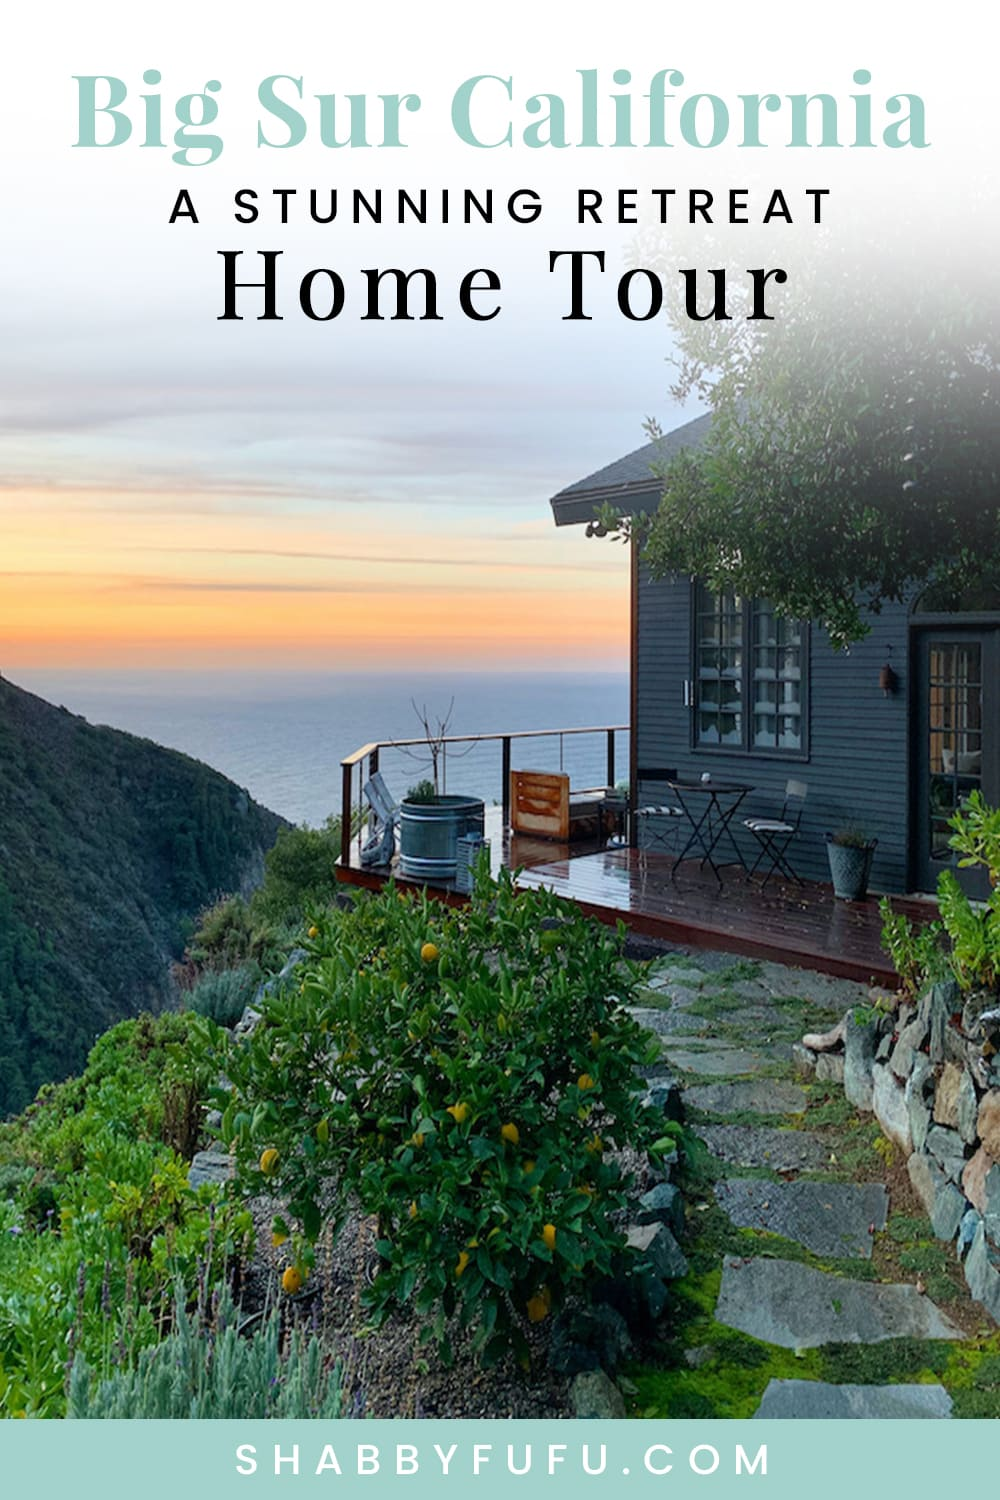 Big Sur California Home Tour at Shabbyfufu.com